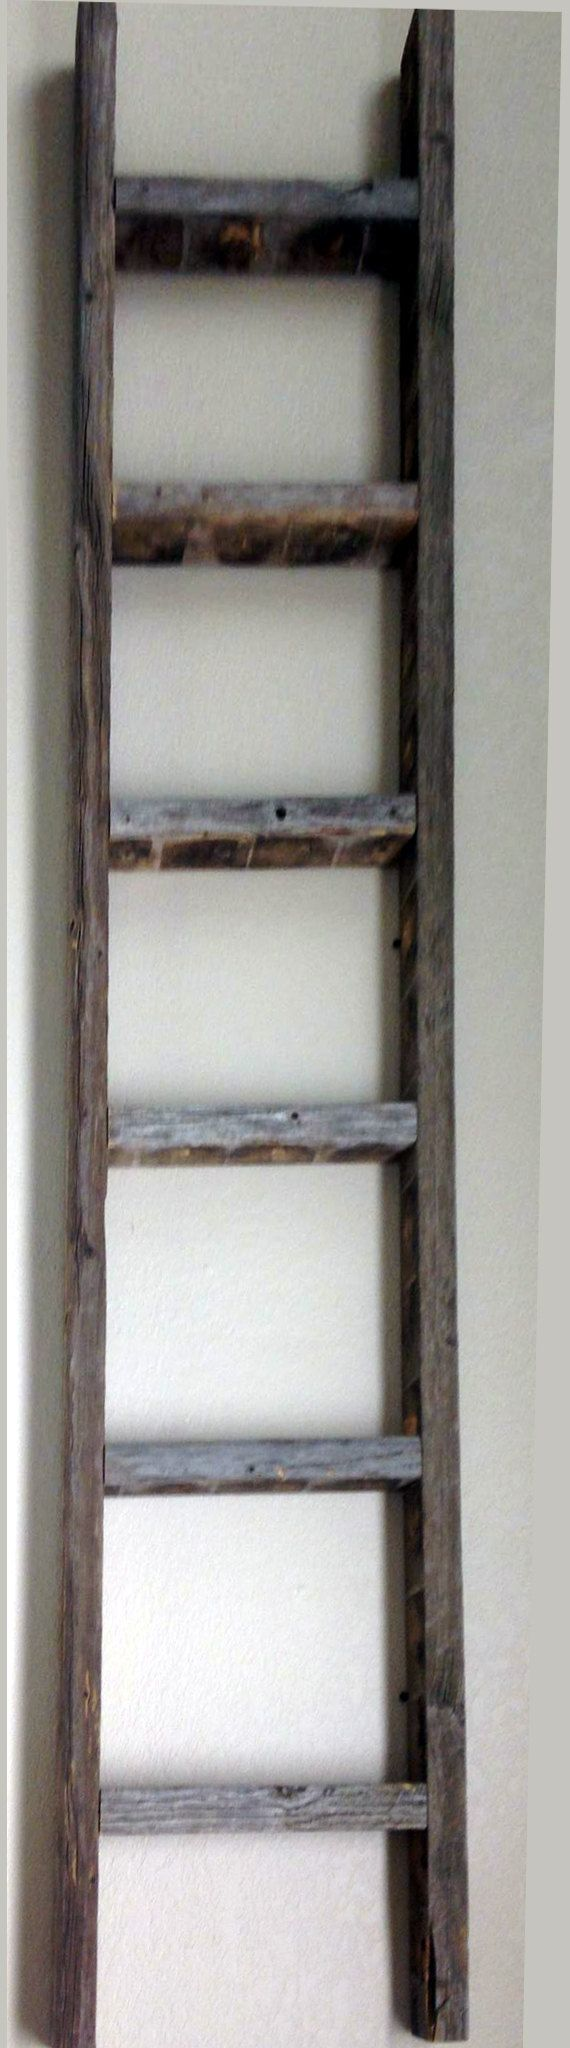 This authentic weathered rustic barnwood ladder is made from old 2x3s. There are 6 rungs with a space of 7 high and 12 wide between each rung.